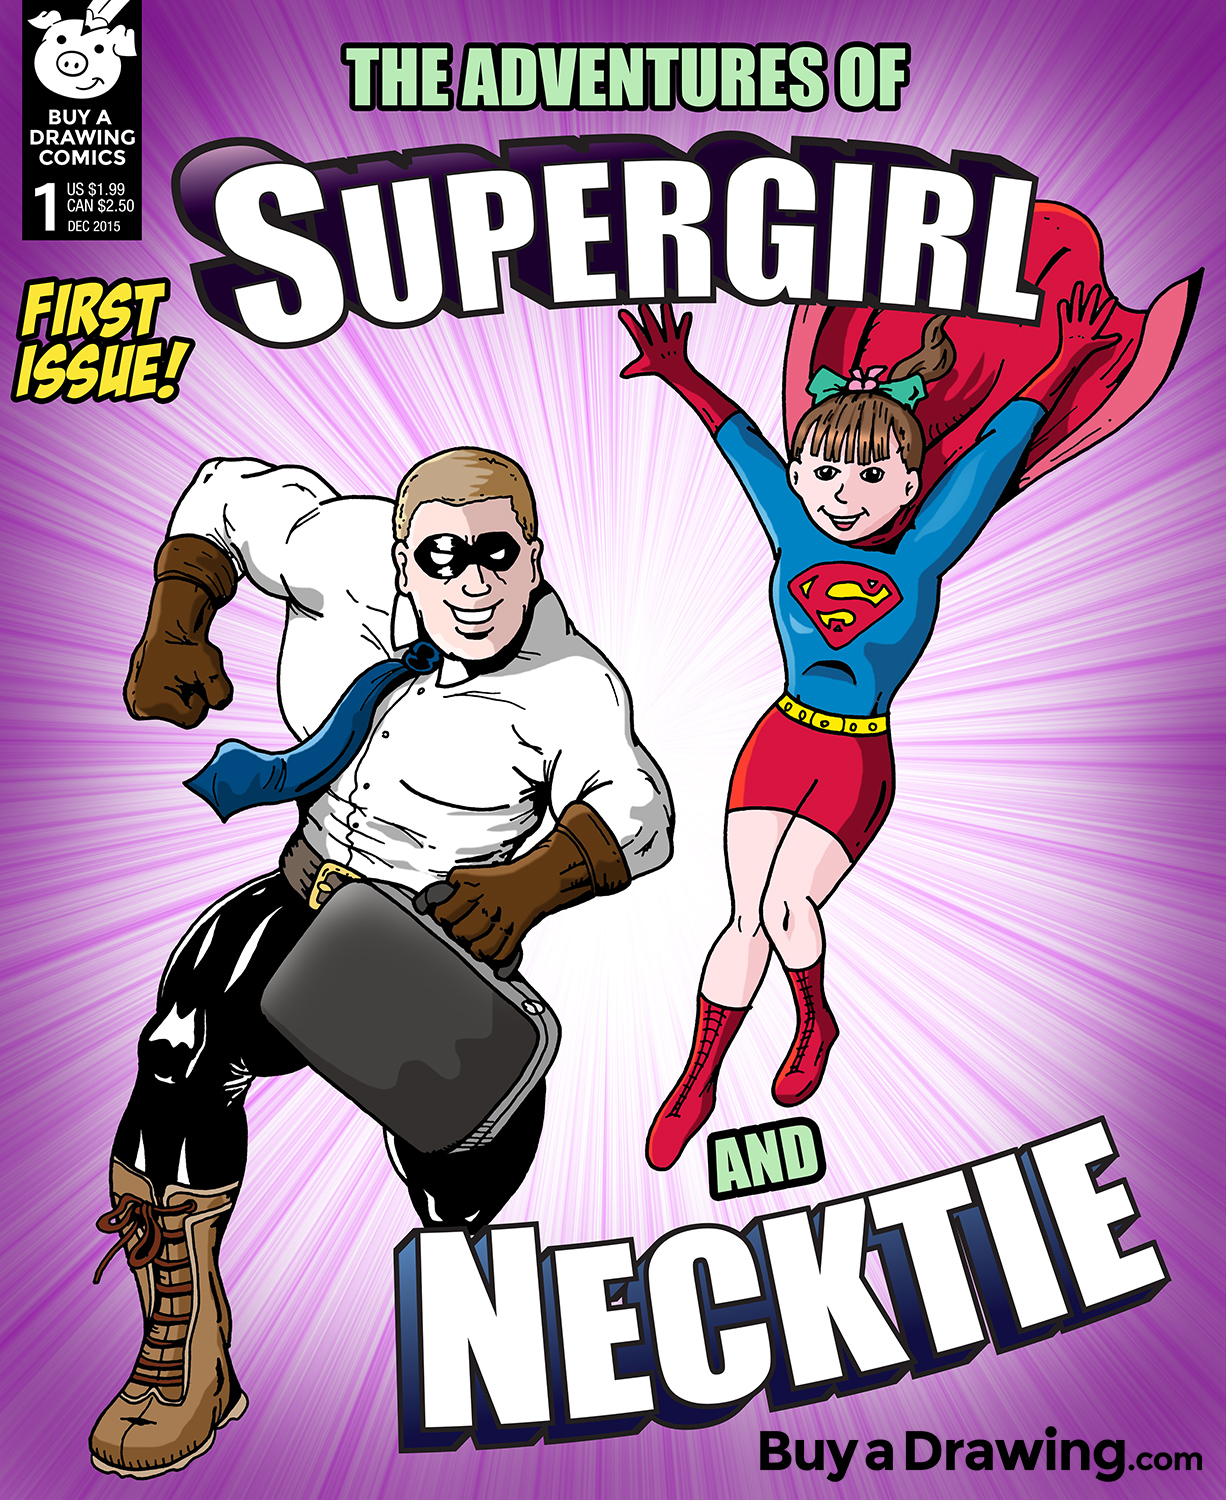 Drawn super girl And Drawing:  Necktie Custom